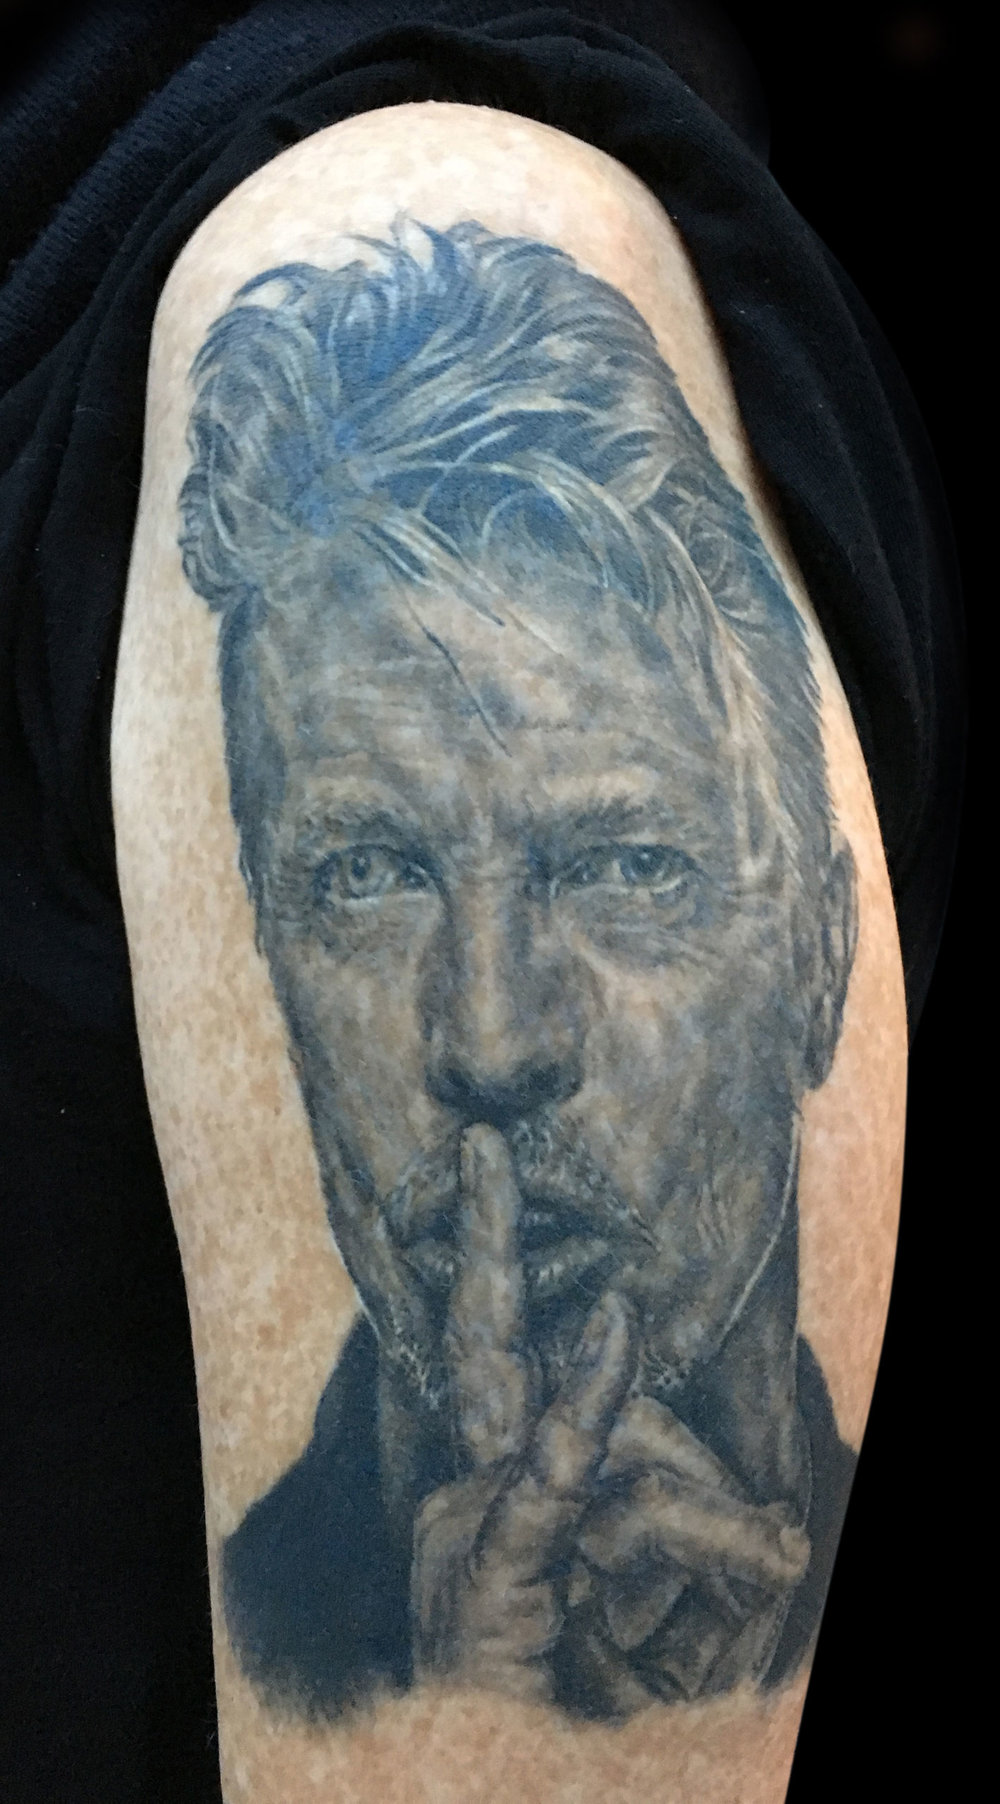 Black and Grey David Bowie Portrait Tattoo, (healed)